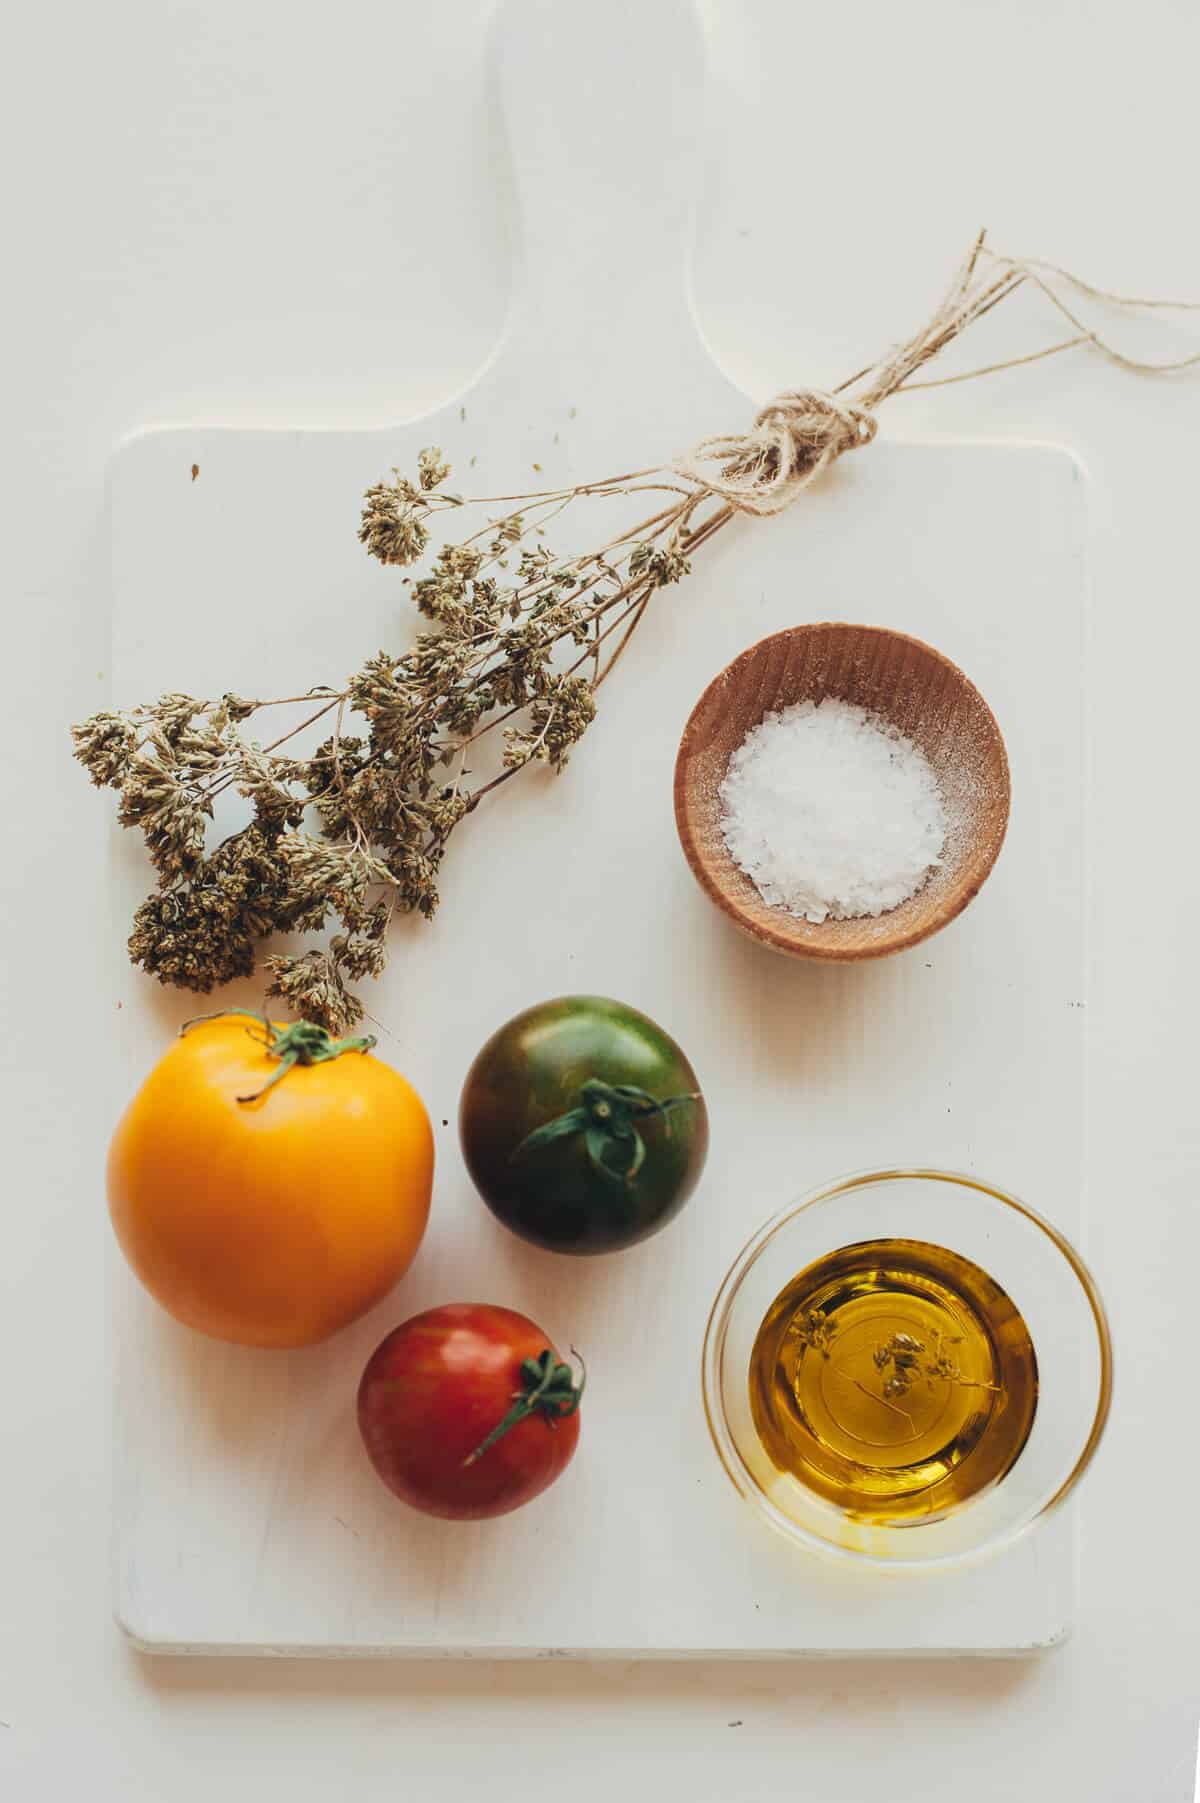 tomatoes, salt, olive oil and oregano on a white chopping board